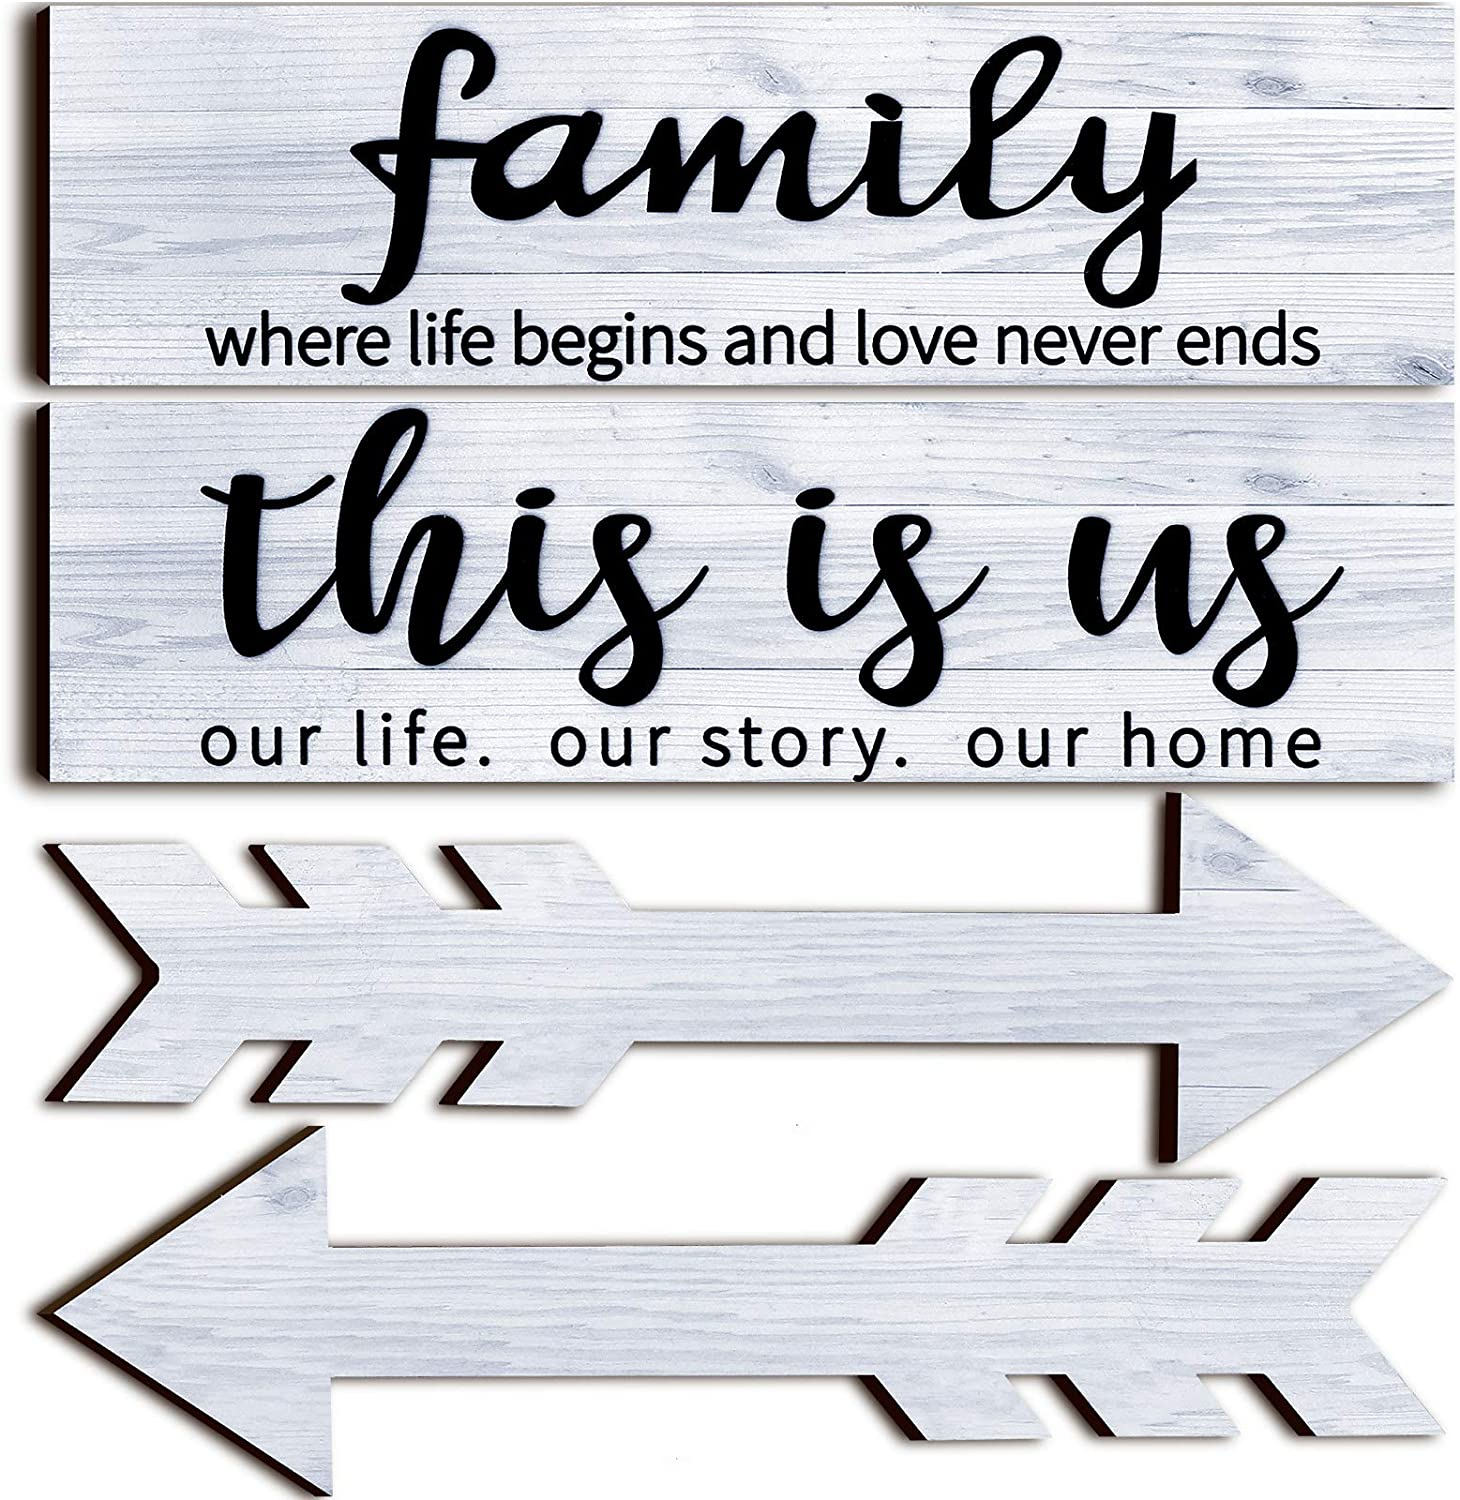 Jetec 4 Pieces This is Us Rustic Print Wooden Signs Wooden Family Signs Family Wooden Hanging Sign Decorations for Home Bedroom Living Room Kitchen Laundry, 15 x 4 x 0.2 Inch (White)